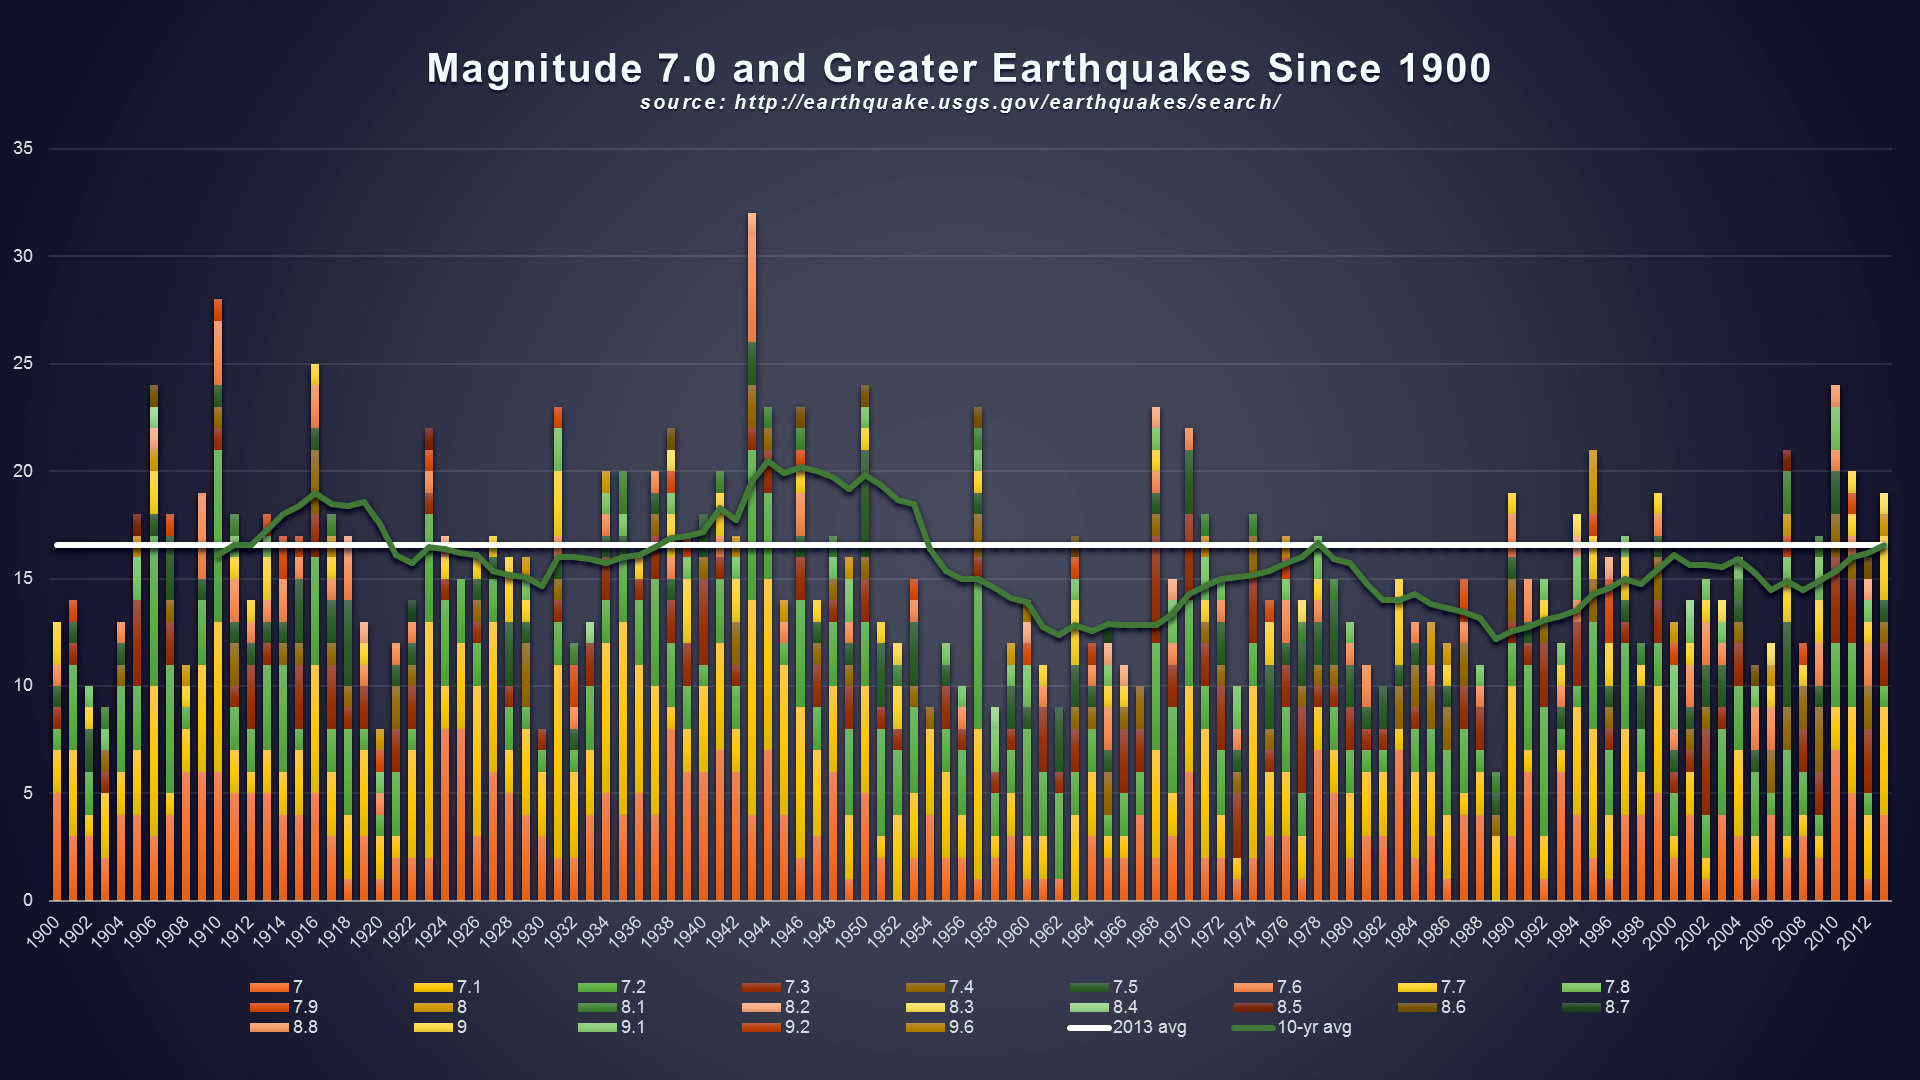 comparing earthquakes Today's japan earthquake was caused by one of the most powerful quakes of the past 110 years the earthquake, with a magnitude of 89, was the largest in the recorded history of japan, and the 7th largest on record in world history the japan earthquake had a depth of 152 miles the january 2010.